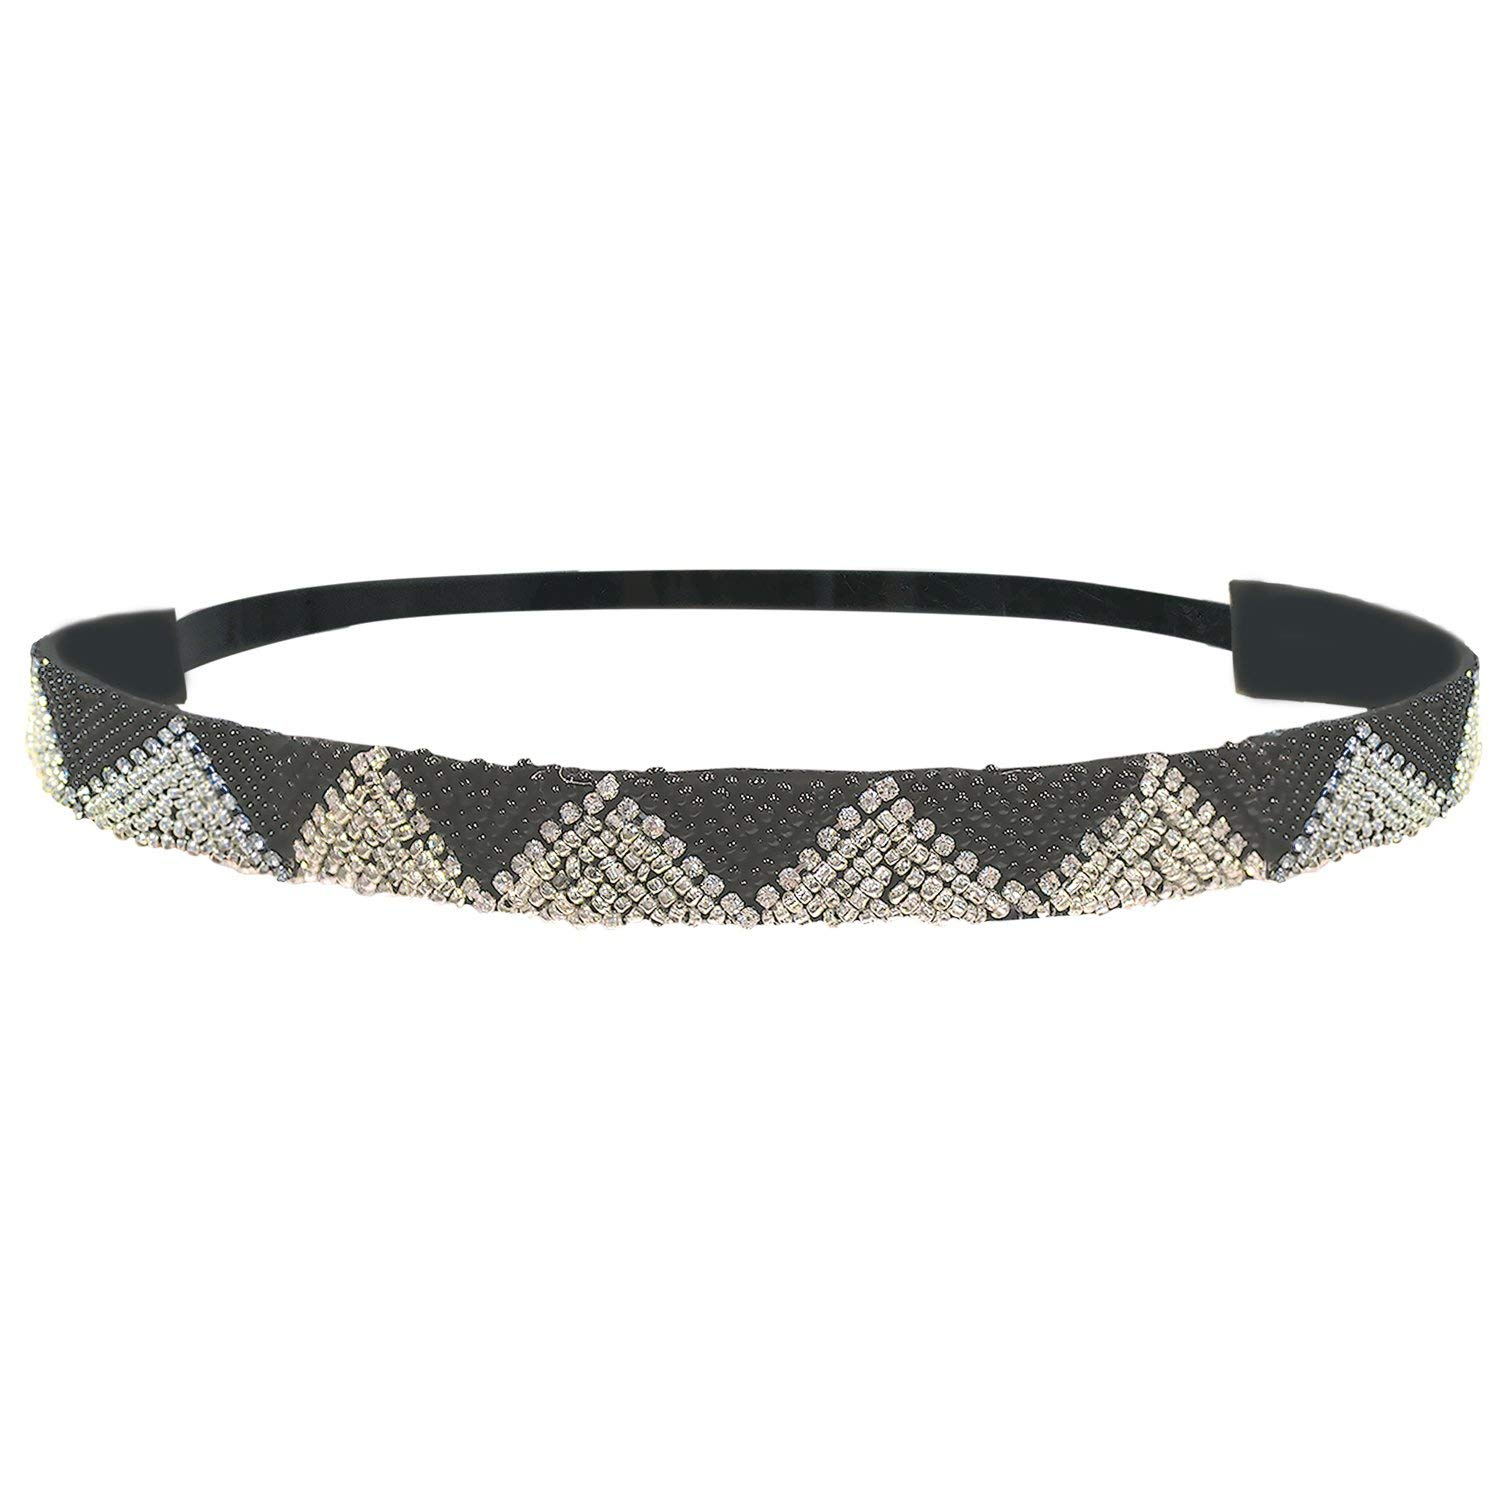 Mia Embellished Headband, Beautiful, Handmade Beaded Headwrap, Black And Silver Zig Zag Design, Pretty Velvet Lining, Adjustable Elastic Strap, Trendy, Chic, AED 71.63